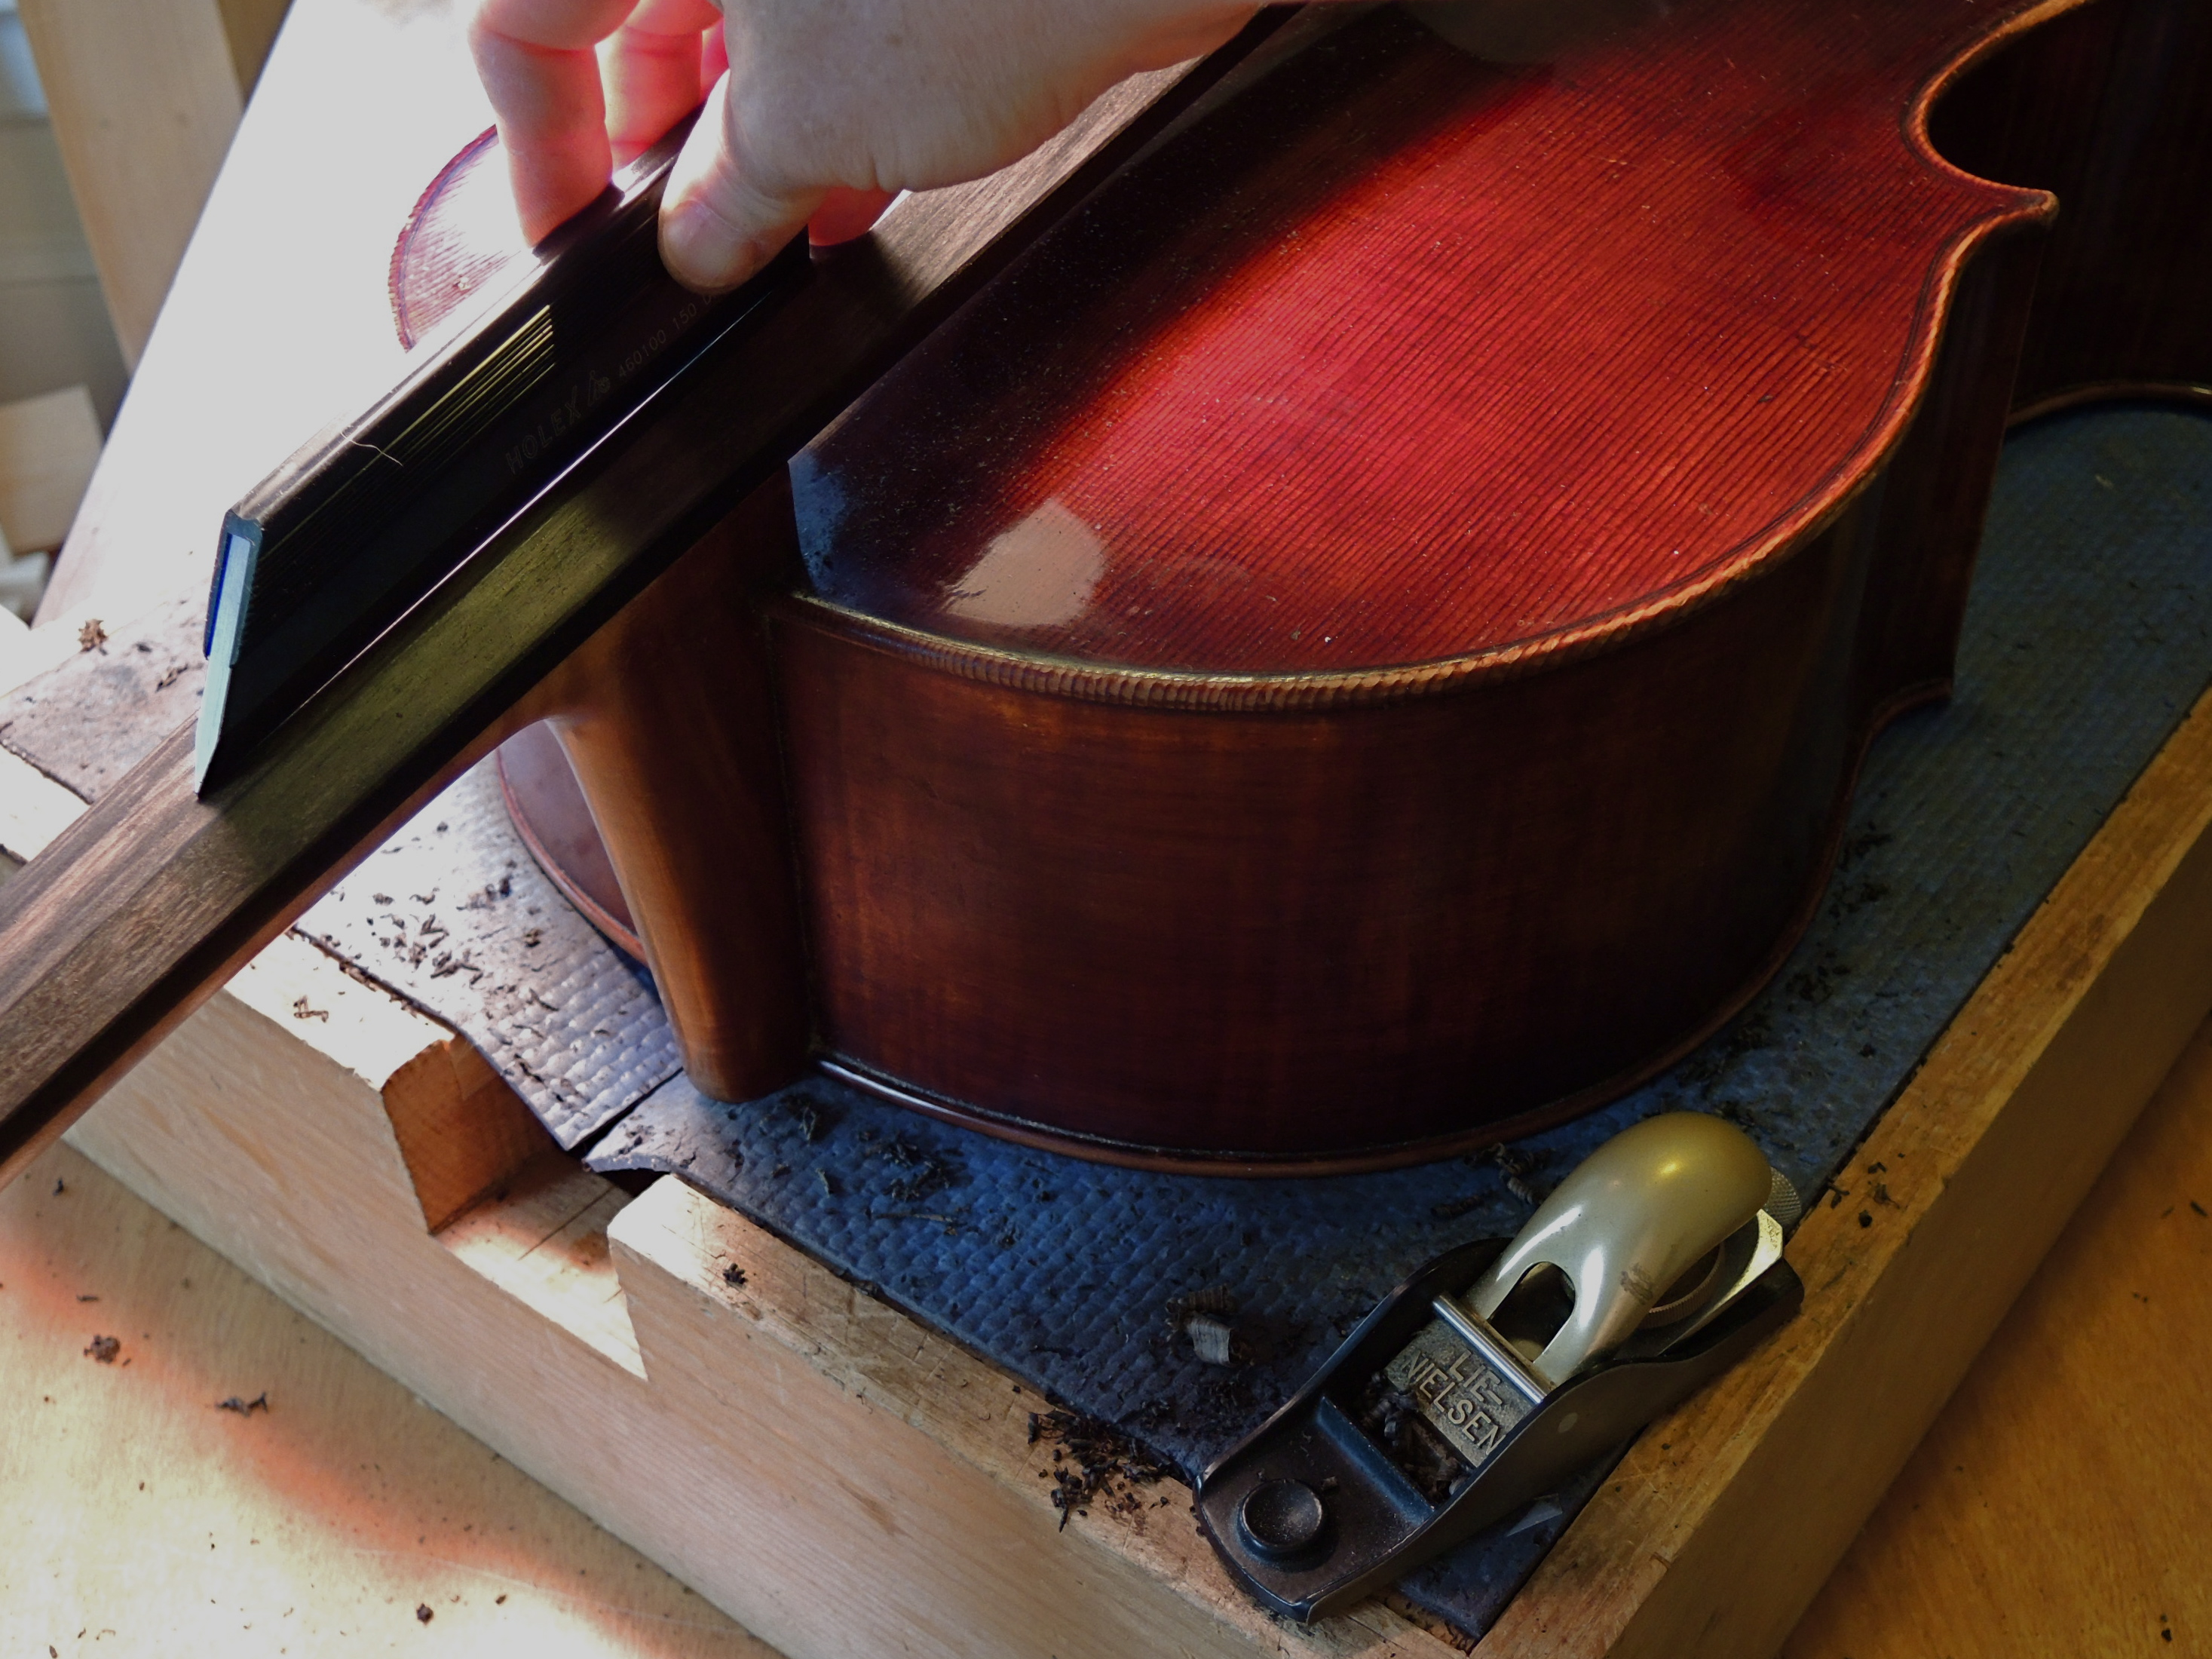 Old wood minerale interior of violin - The Fingerboard Is Polished With Mineral Oil And A Bit Of Tripoli For A Smooth Consistent Surface